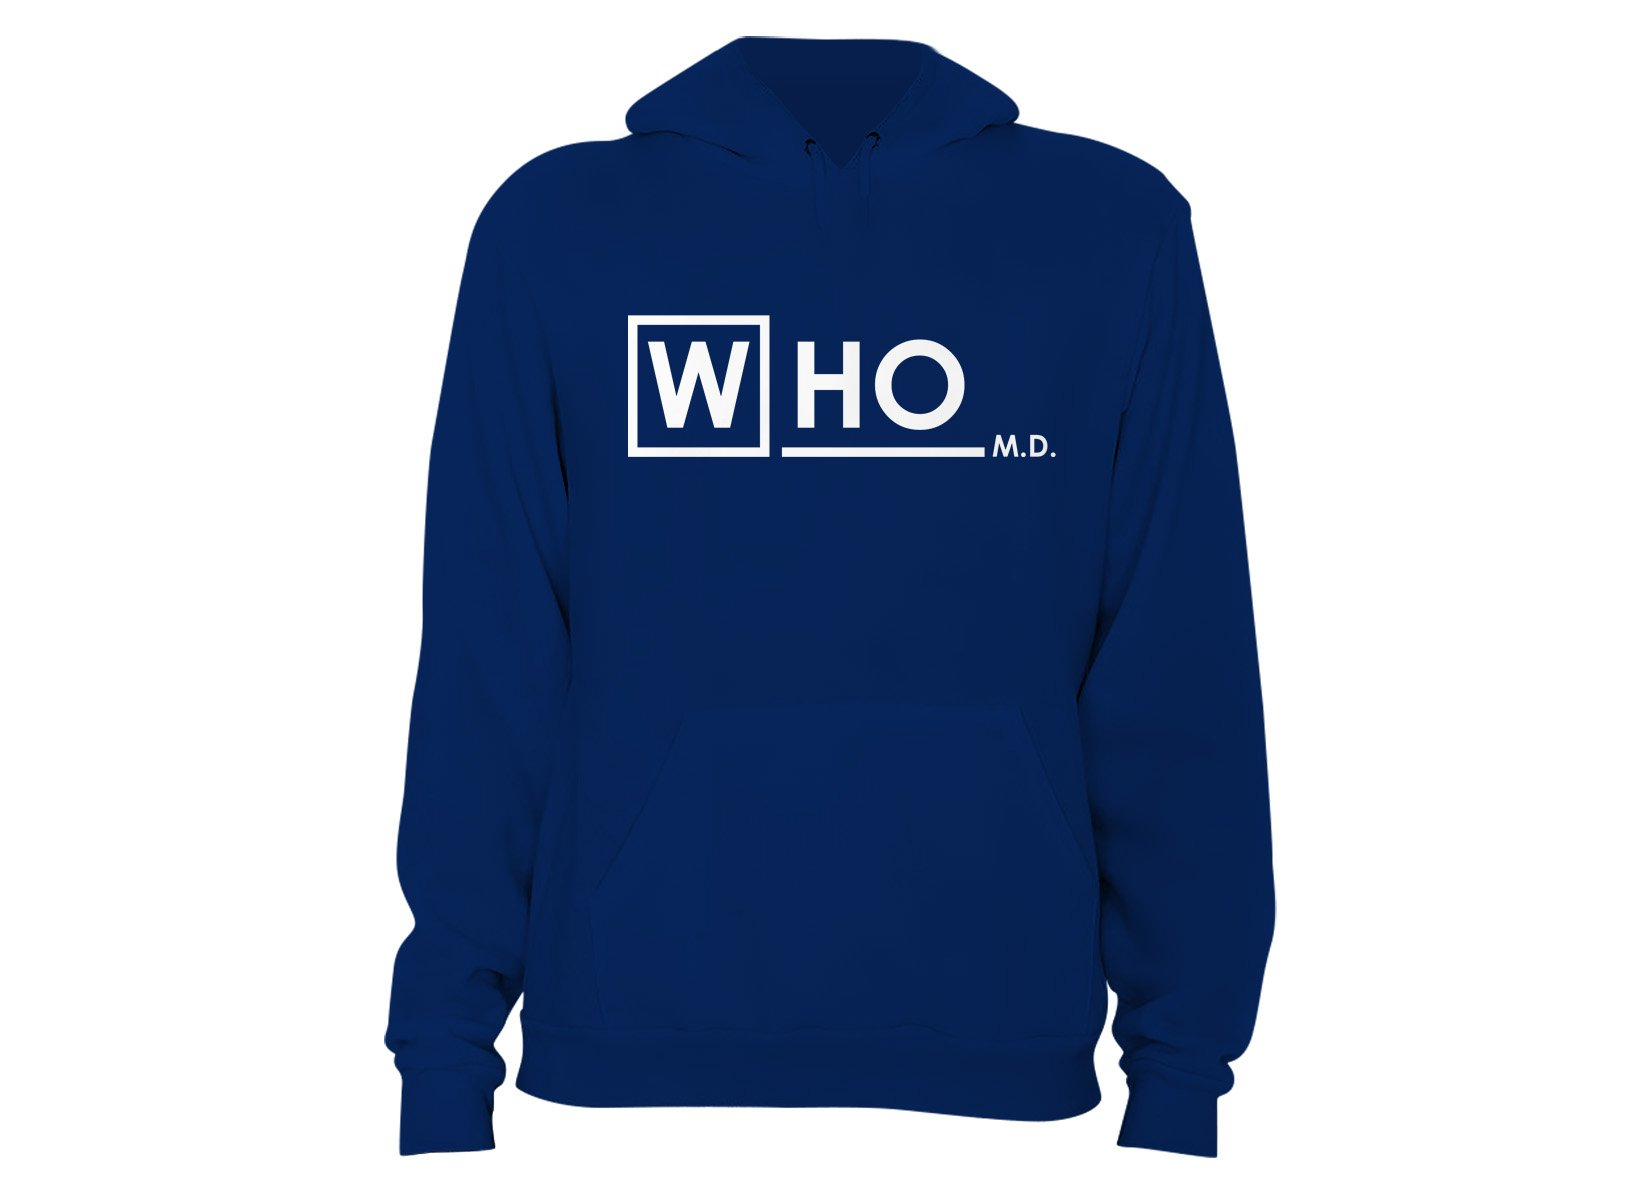 Who MD on Hoodie